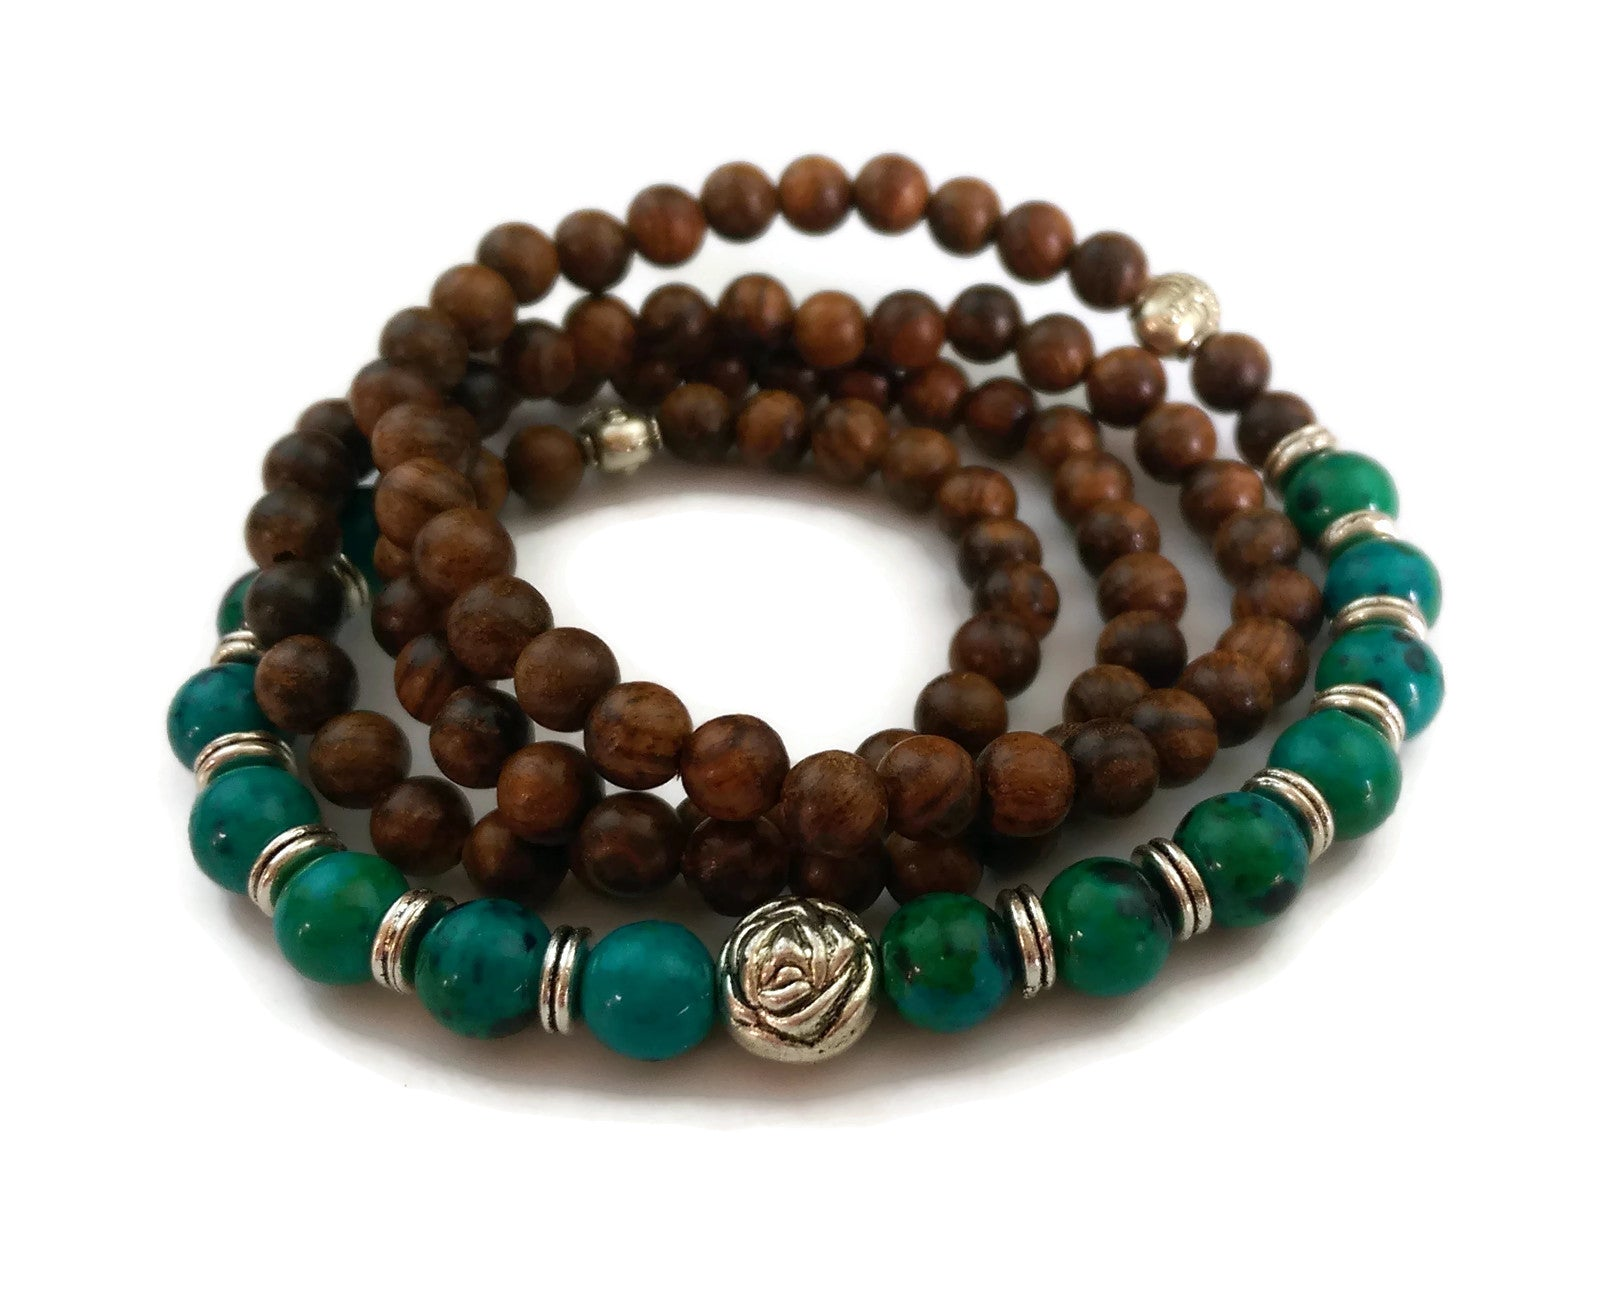 6mm Black Pear Wood and 8mm Phoenix Stone Wrist Wrap Mala Bracelet with Silver Lotus